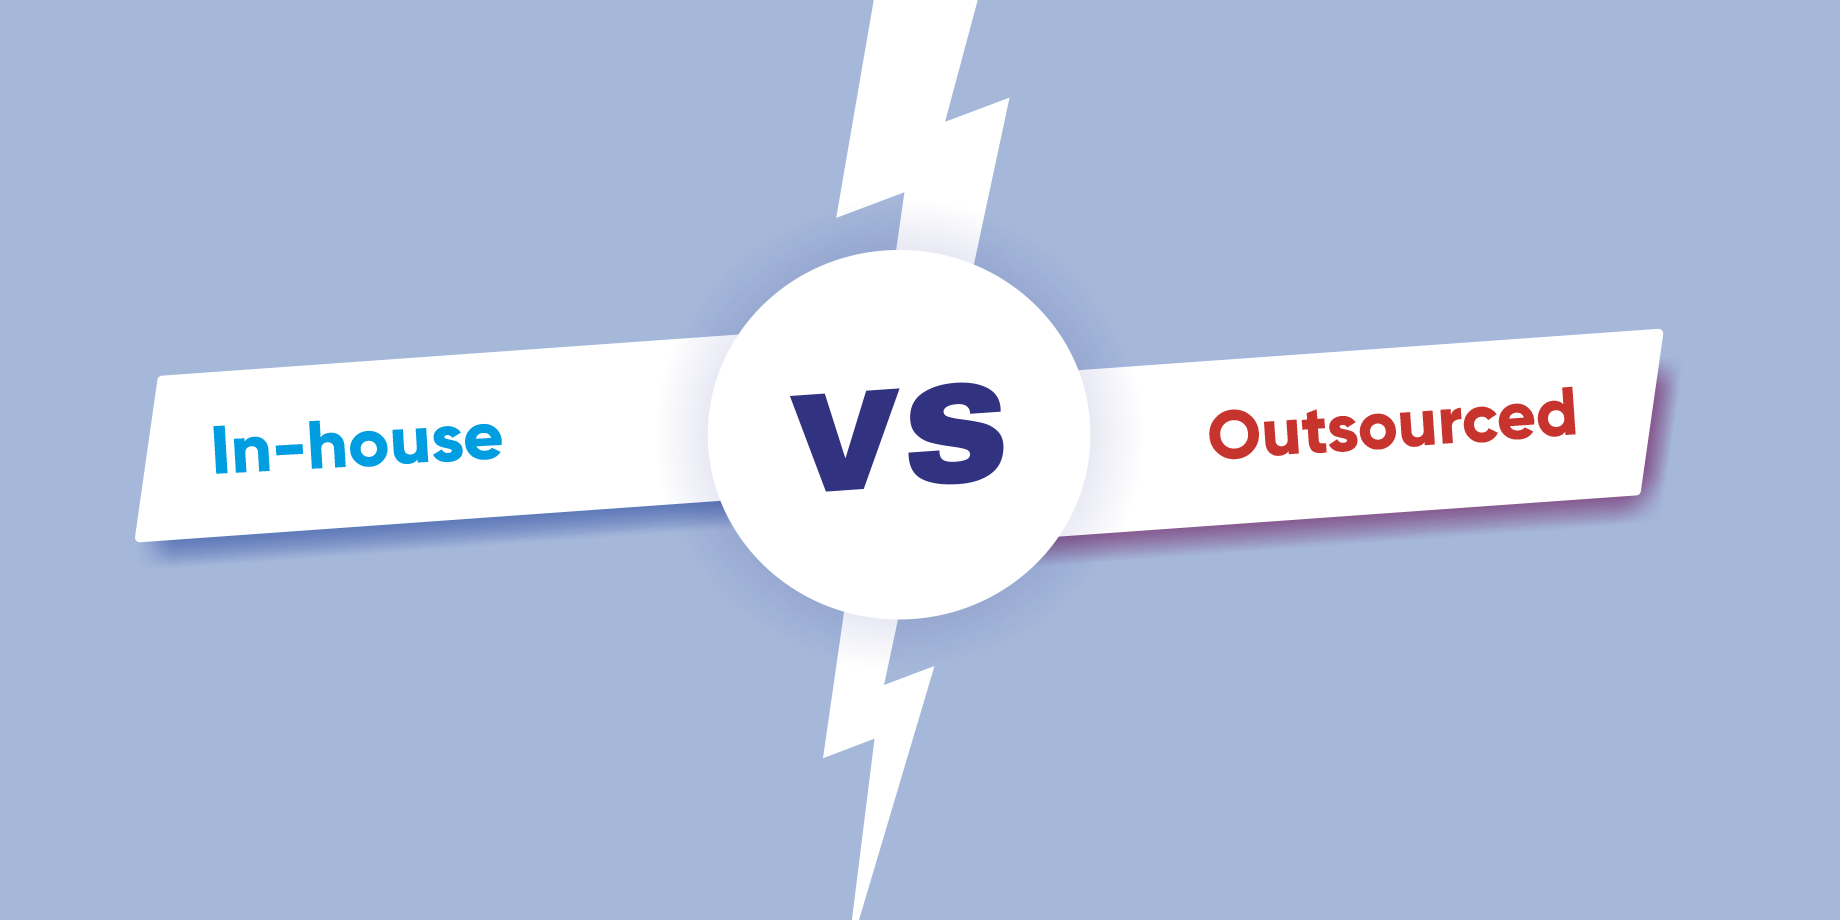 In-house Product Development VS Outsourced Product Development: Which One Suits You Better?